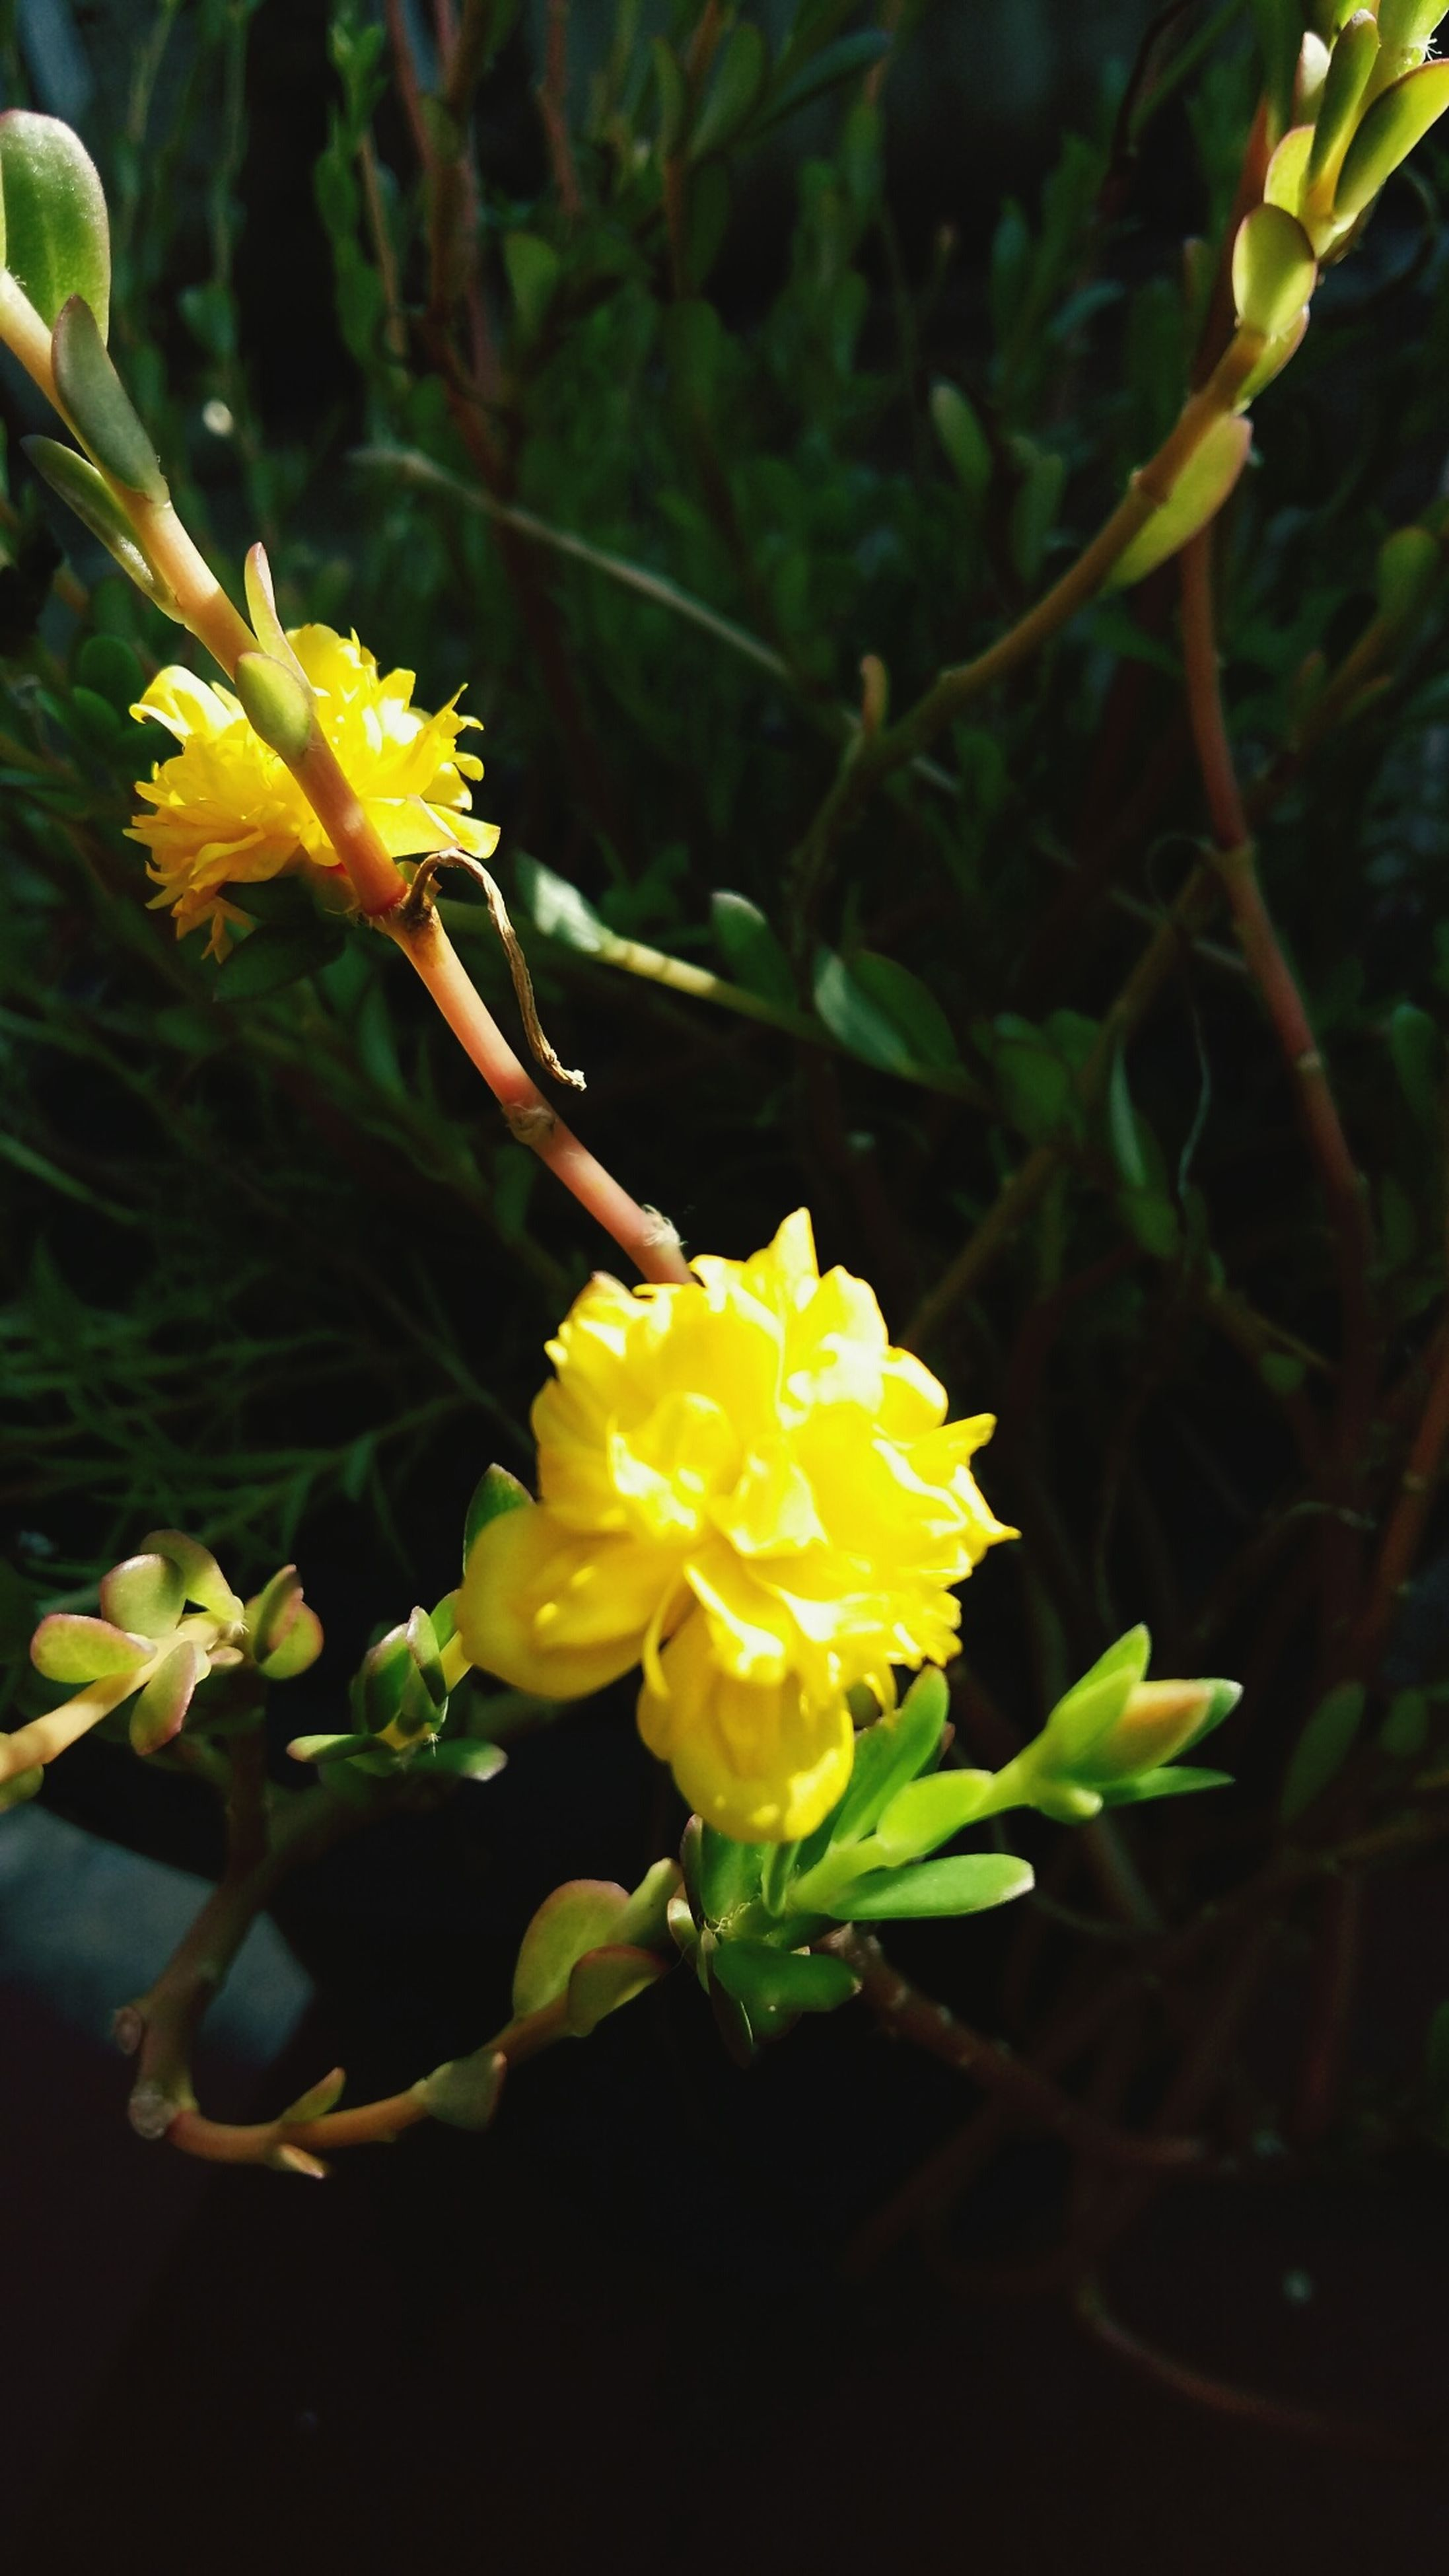 flower, petal, yellow, freshness, fragility, flower head, growth, beauty in nature, close-up, plant, blooming, nature, focus on foreground, stem, in bloom, leaf, blossom, botany, bud, no people